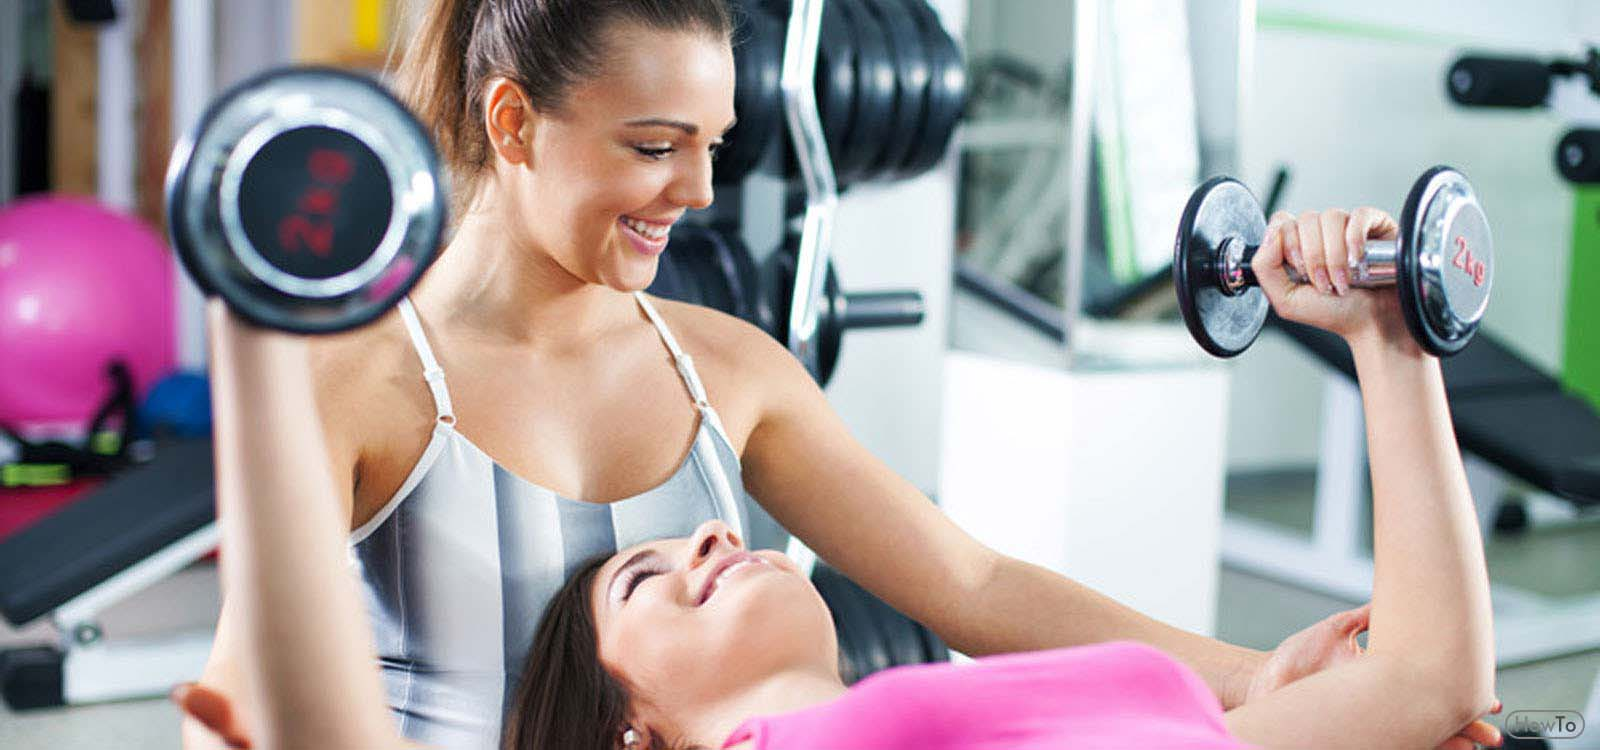 59fadecbd83 5 Tips to Find a Personal Trainer Best Tips Must Know - Howto